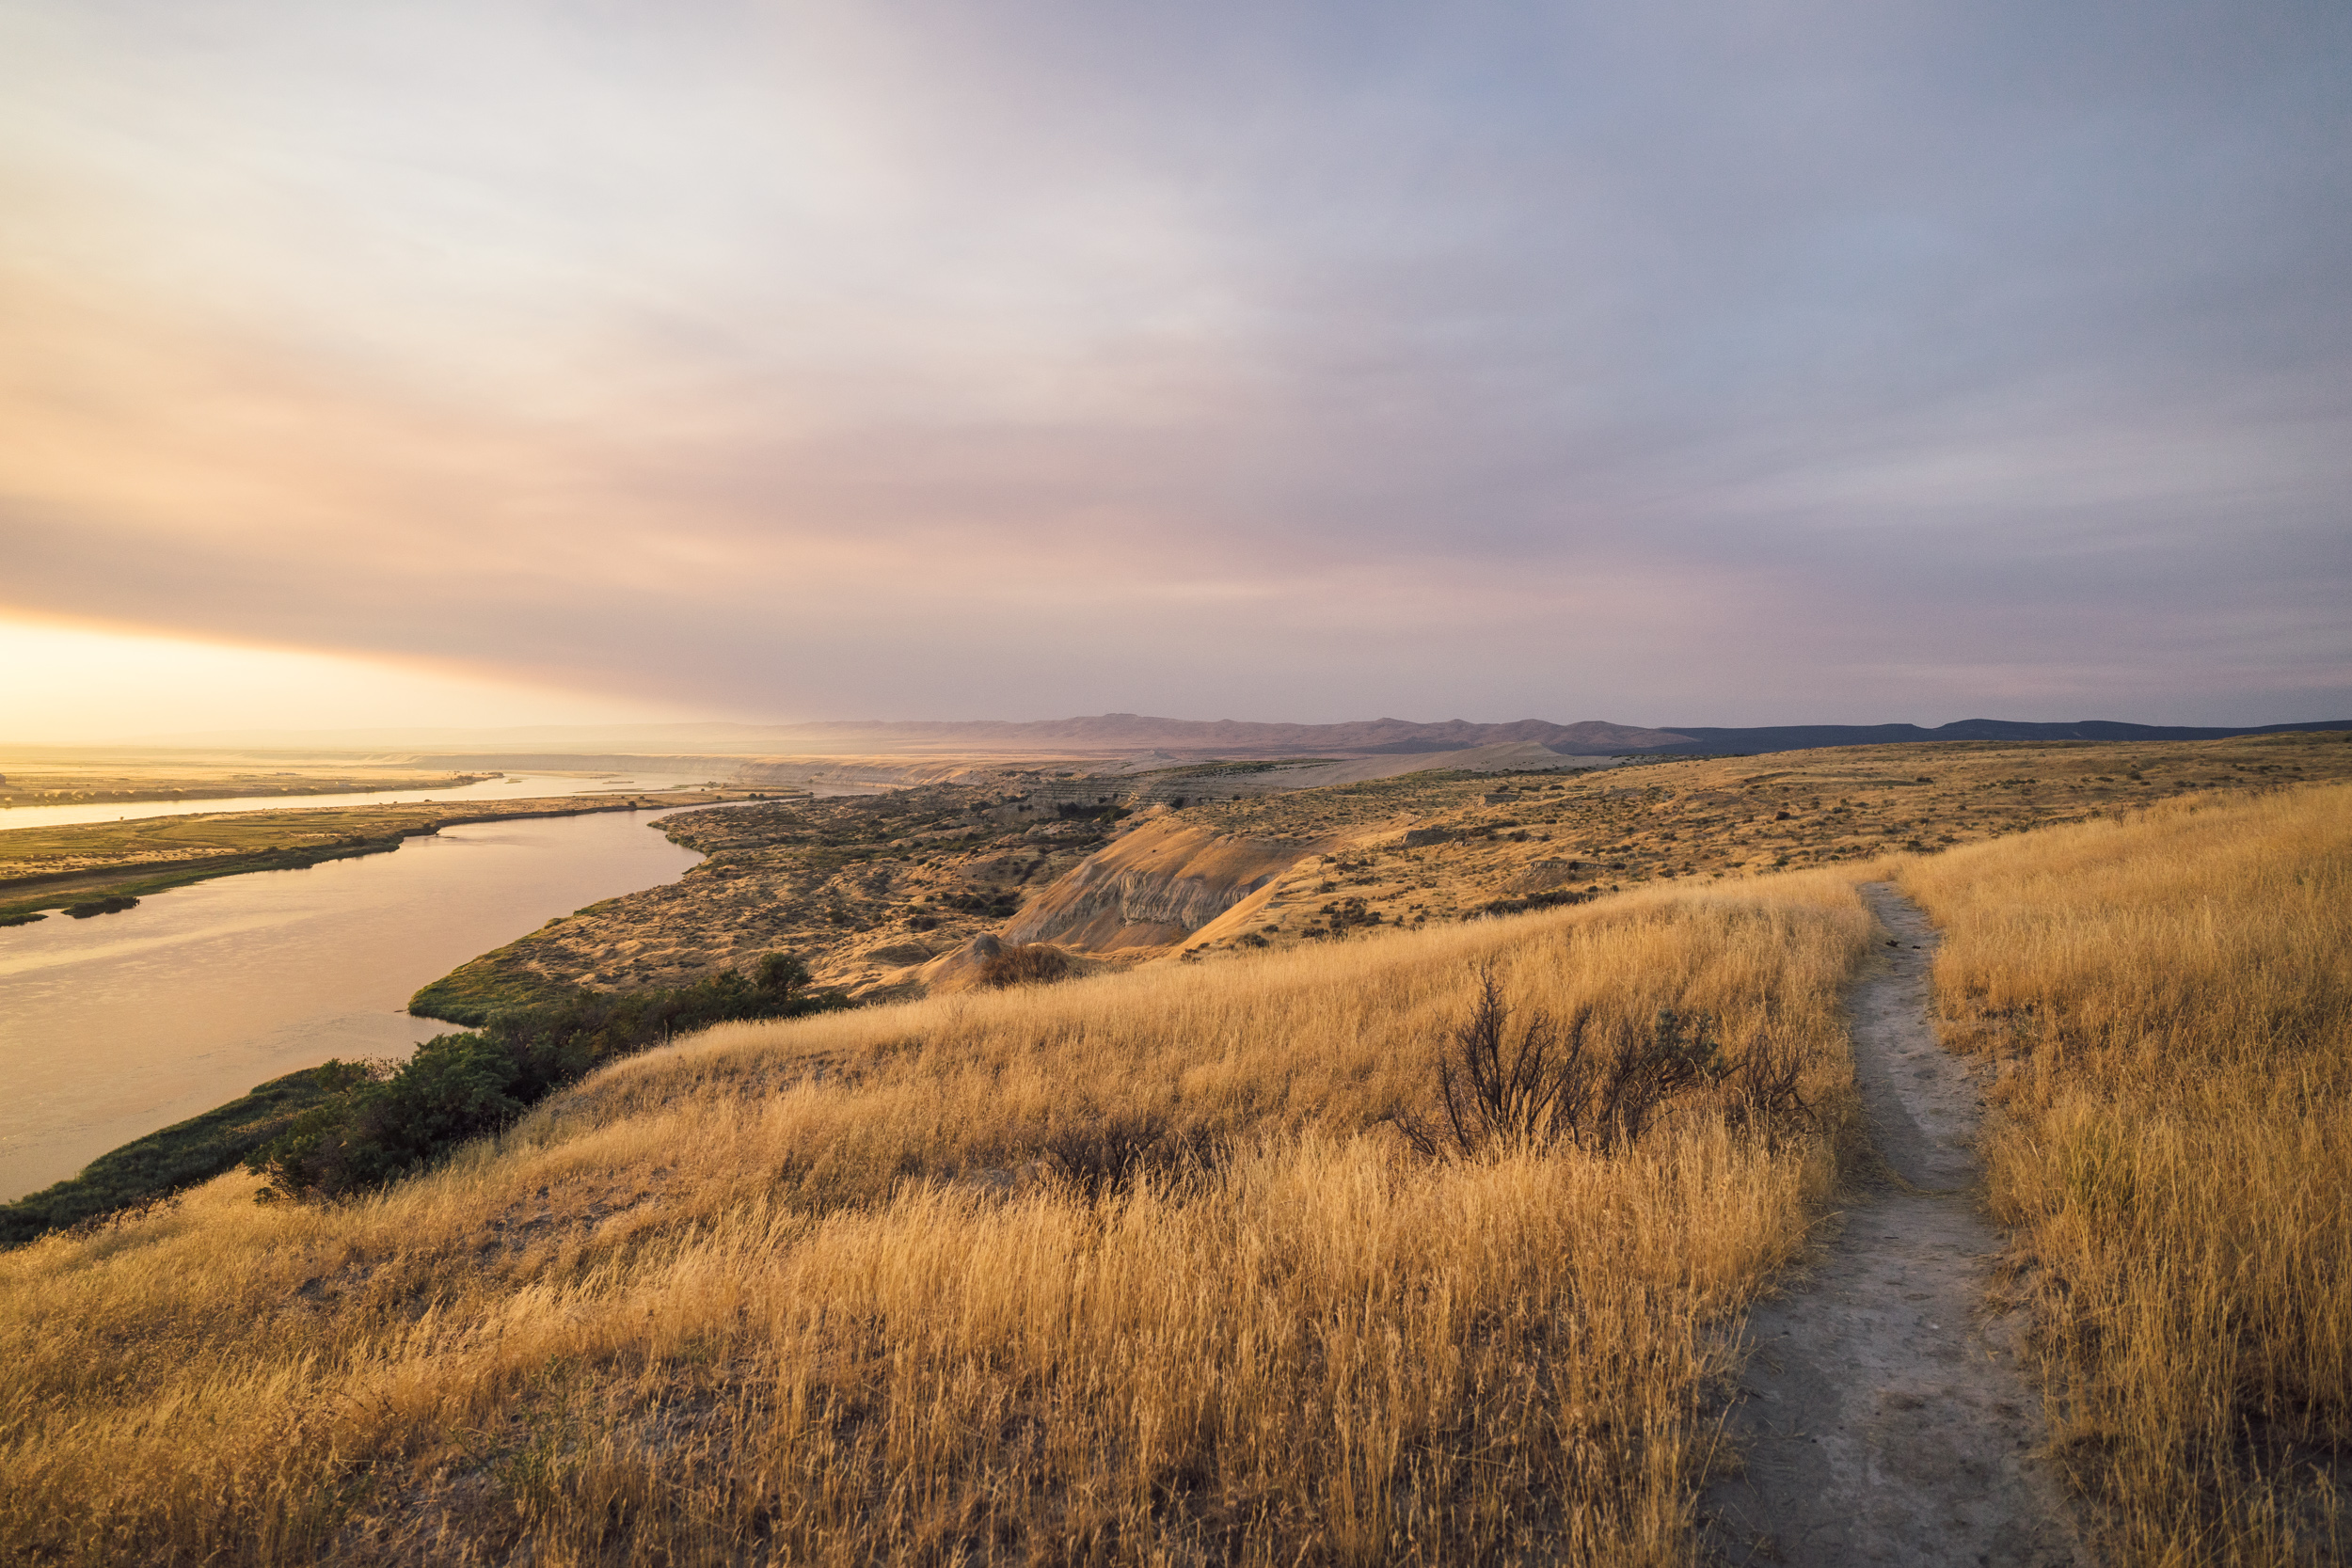 - Commanding views of the last remaining free-flow portion of the Columbia river, the White Bluffs formations and the Saddle Mountain Wildlife Refuge make of this national monument a true hidden gem.